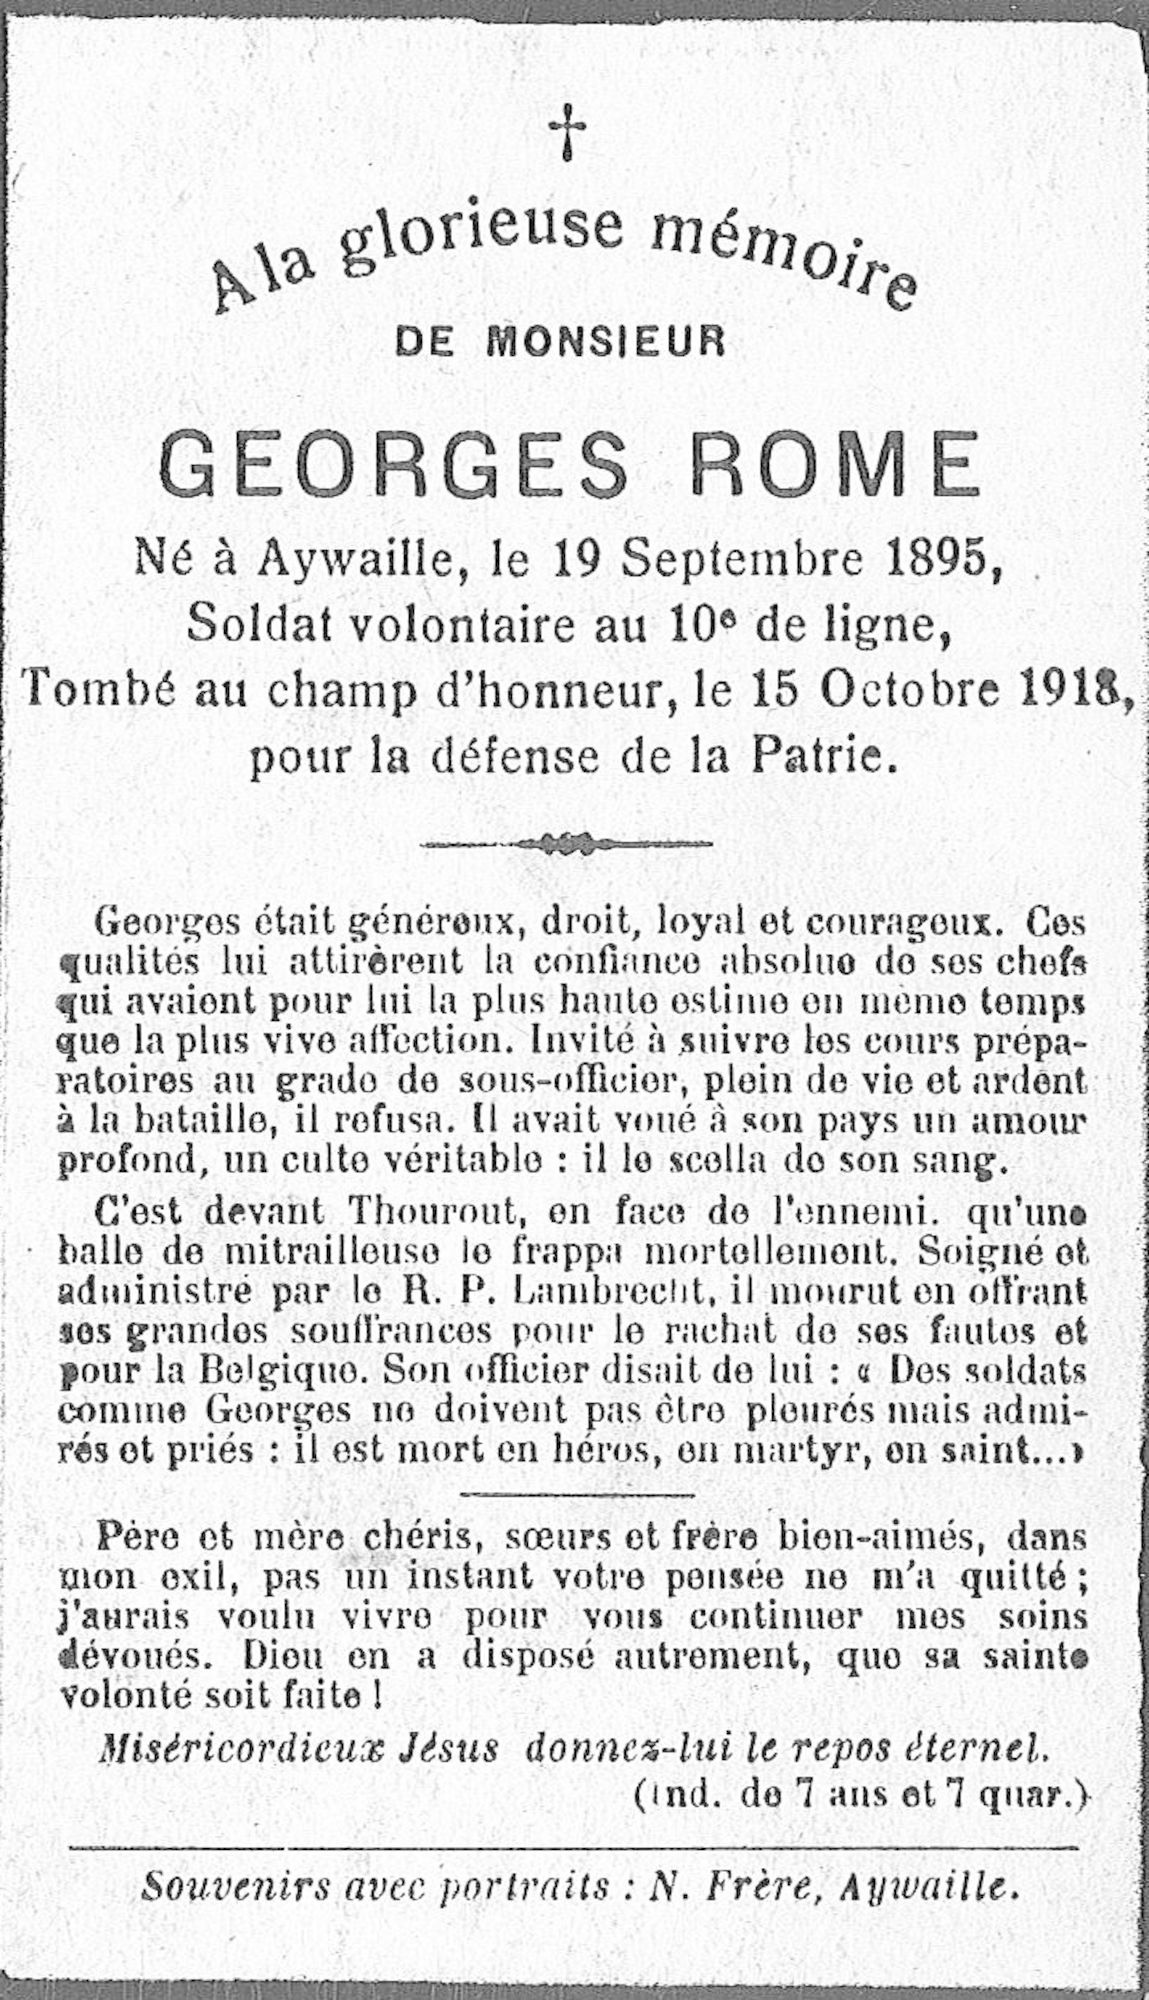 Georges Rome